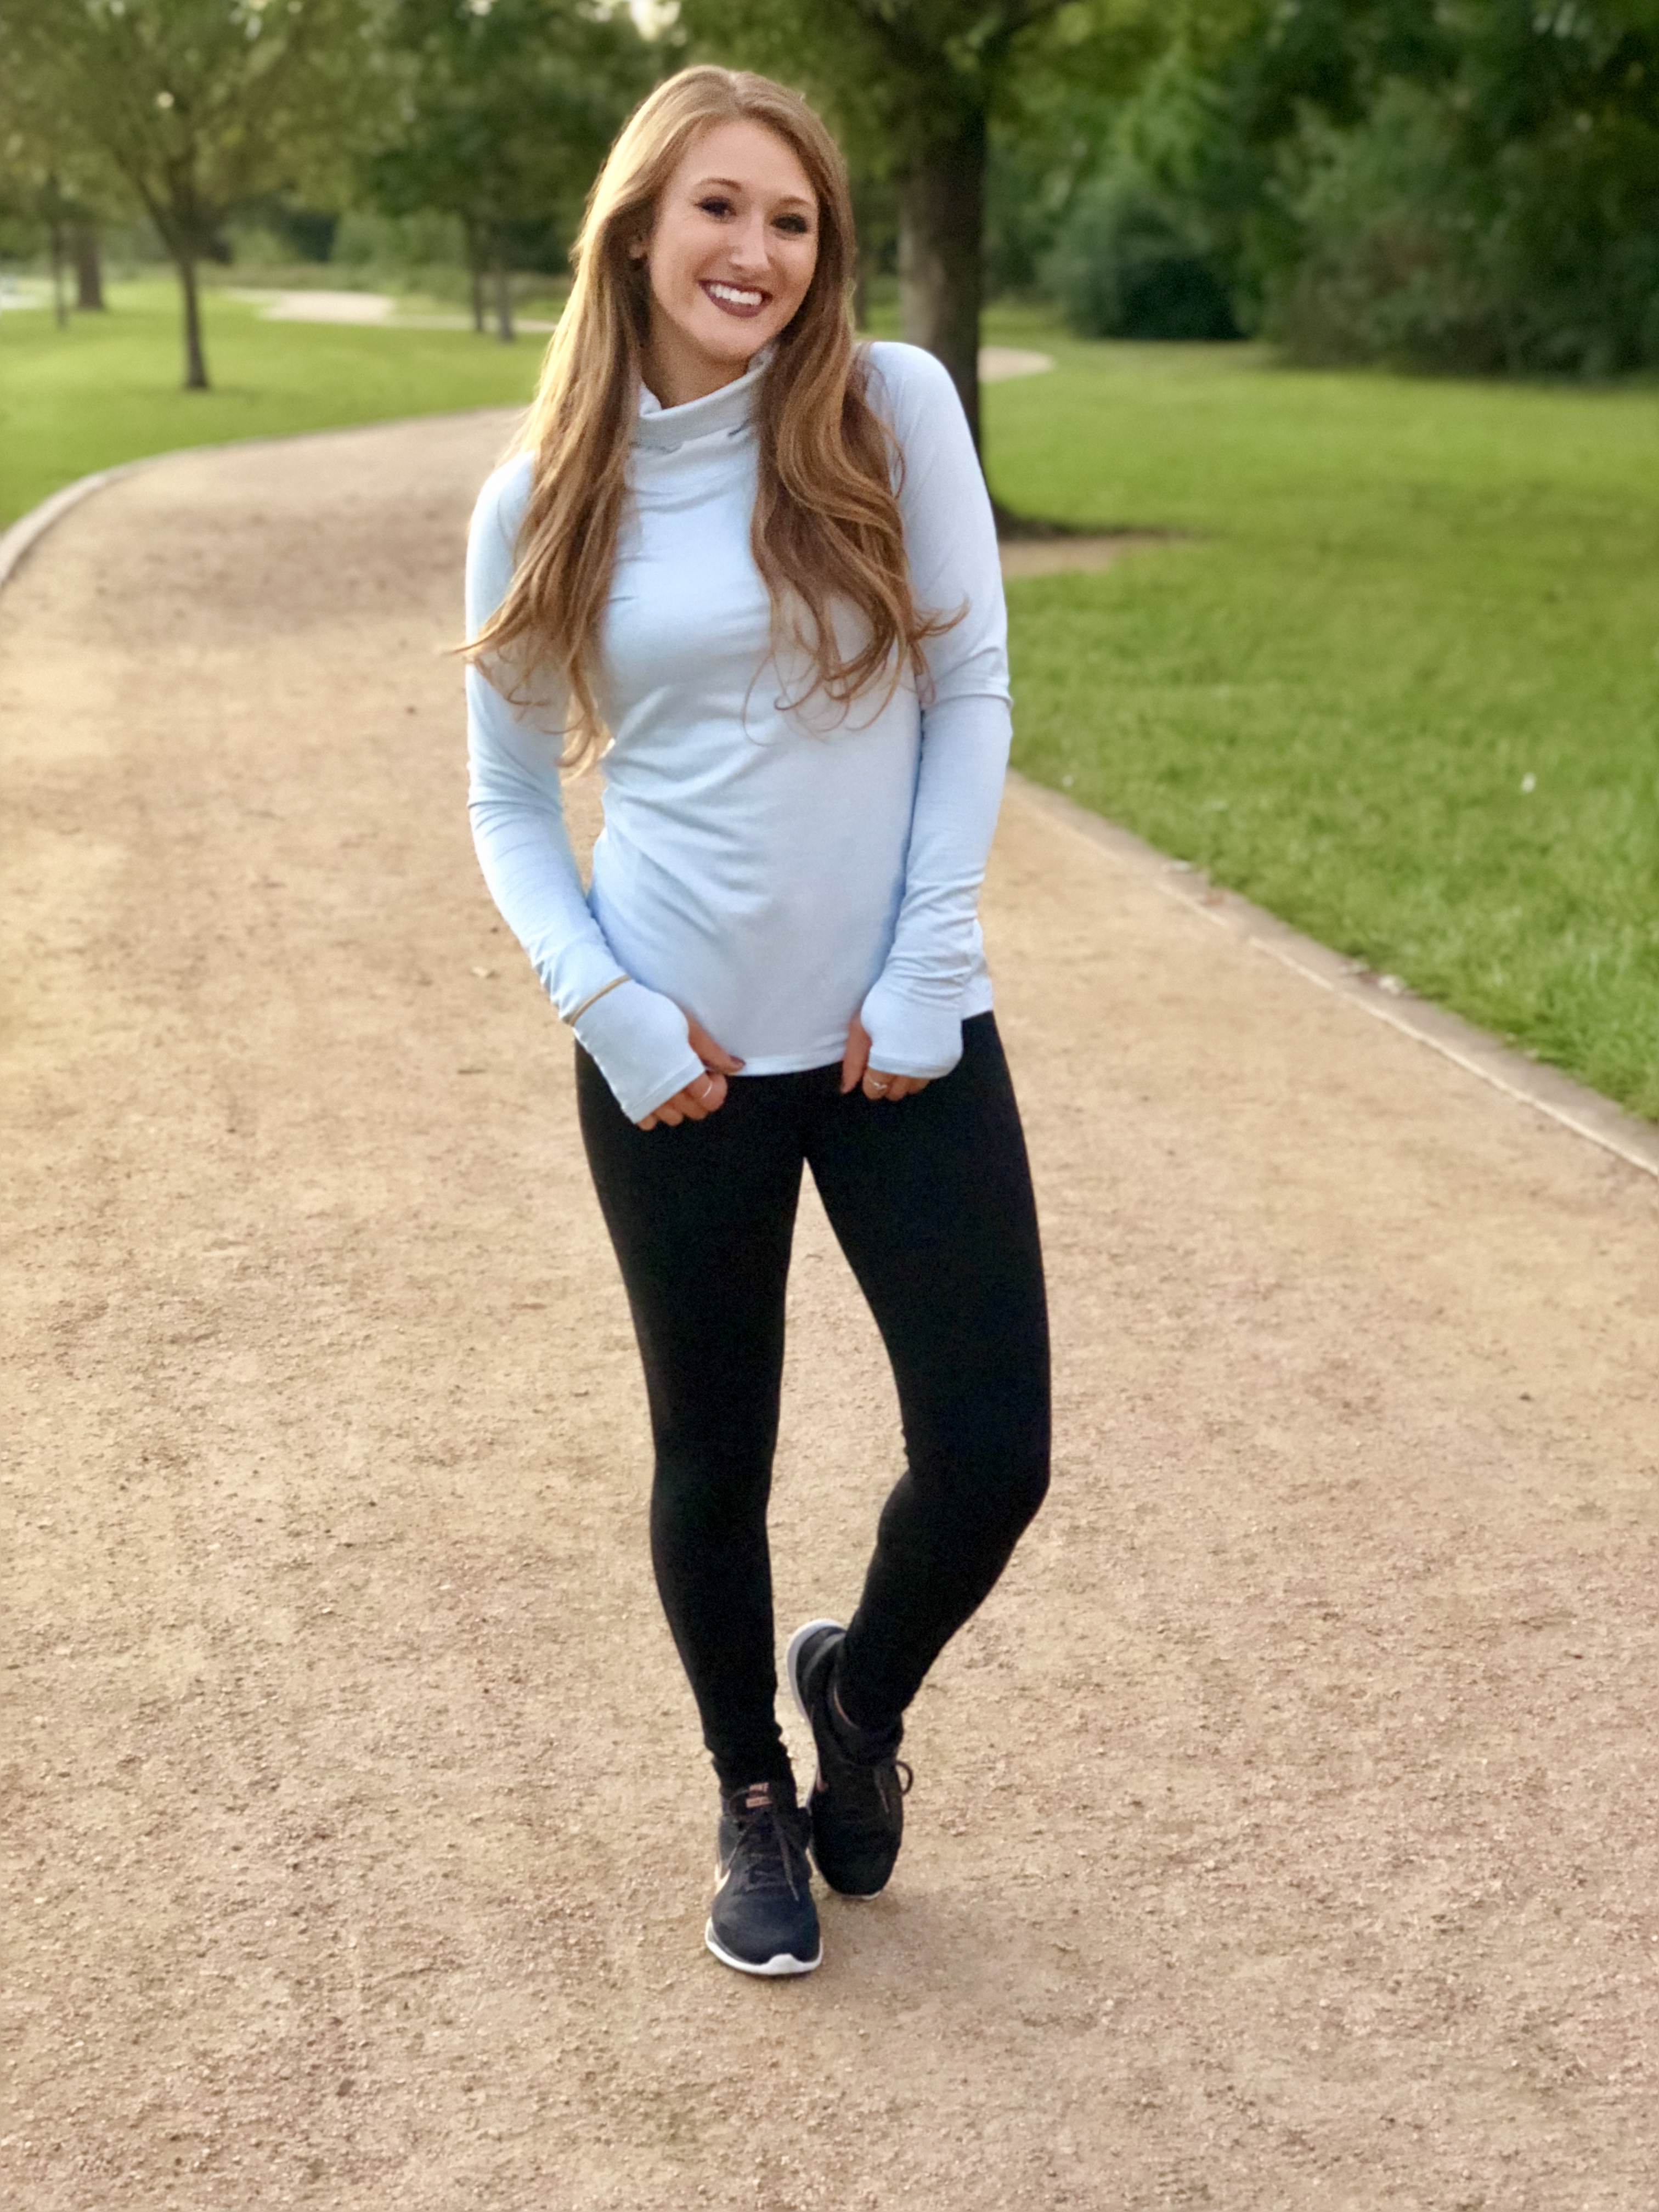 Must-Have Workout Attire for Colder Weather | Chaos and Coffee